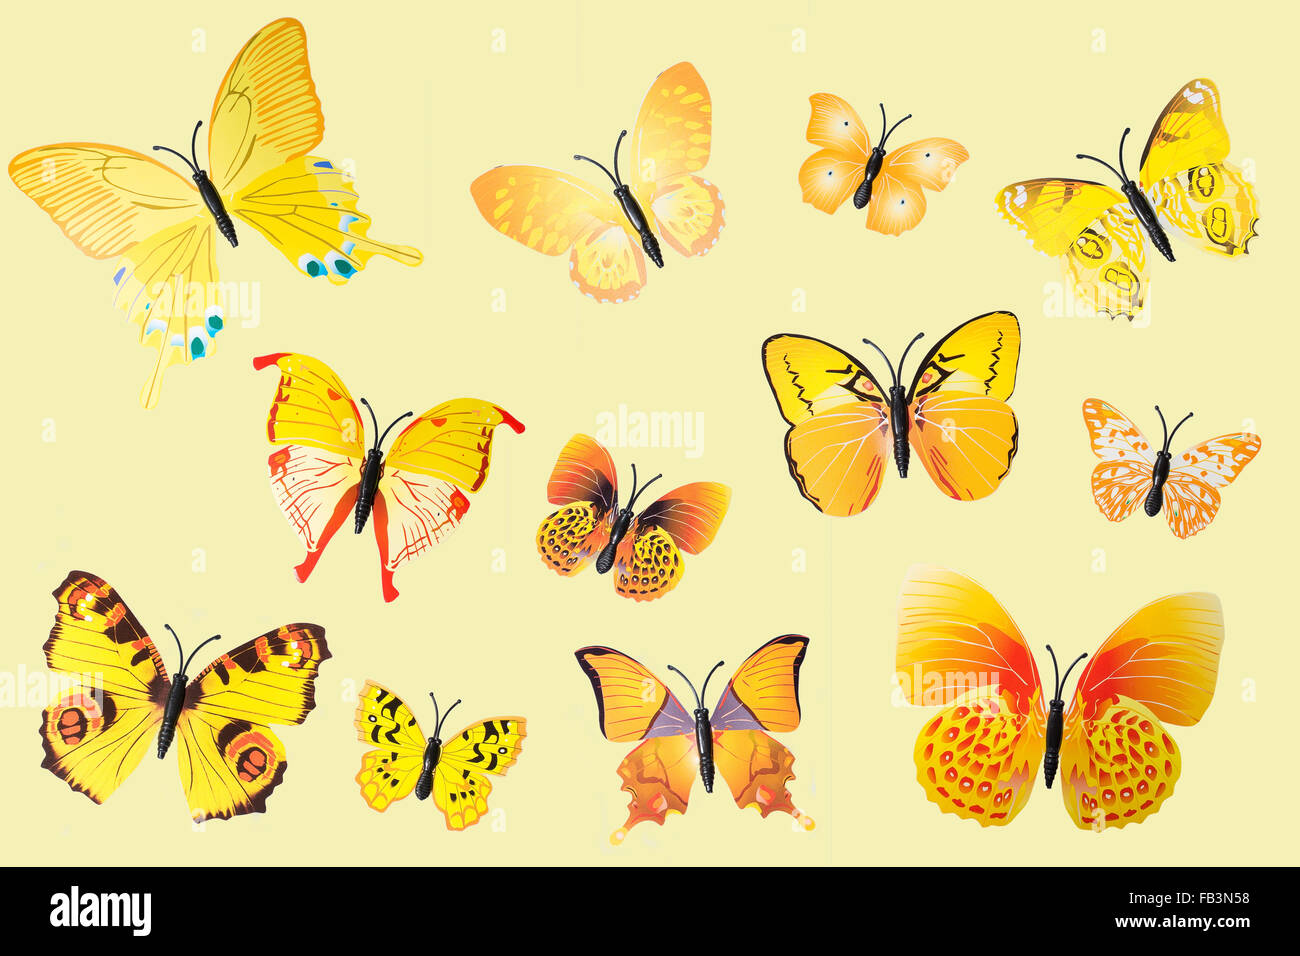 Collection of Yellow Fantasy Butterflies Clip Art - Stock Image